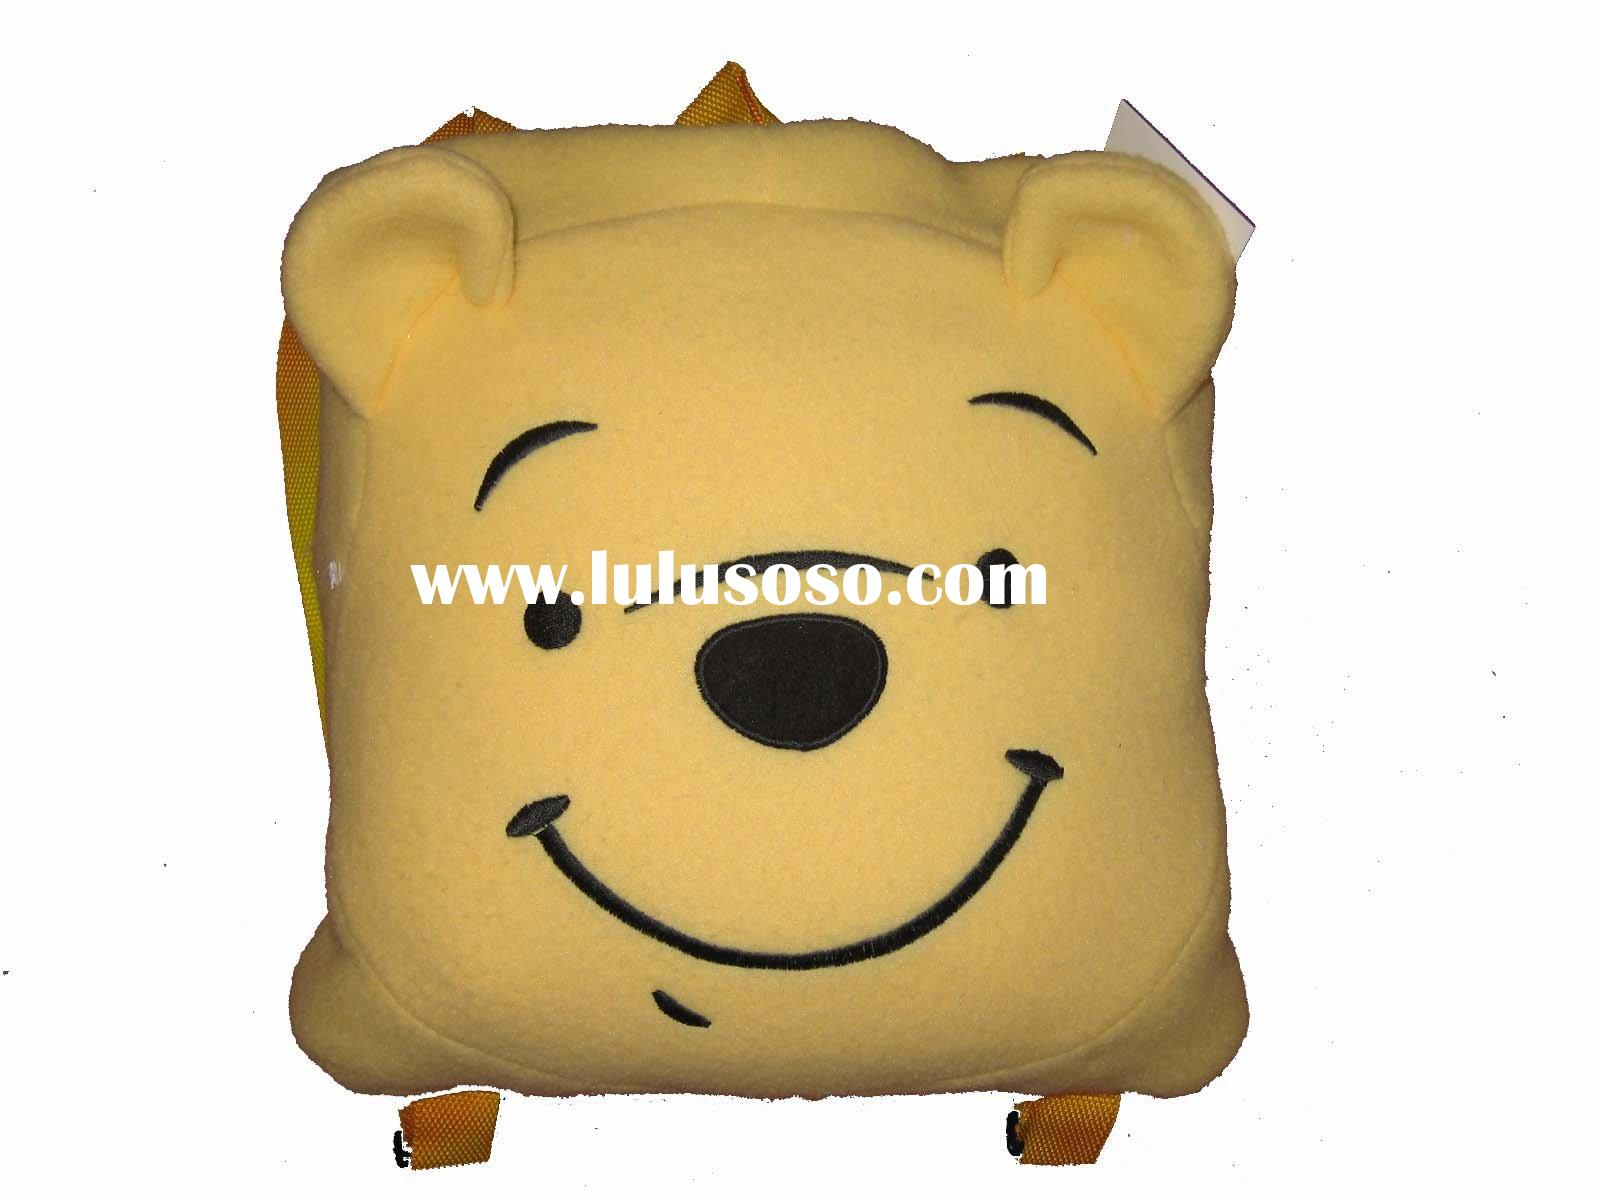 Winnie the Pooh sleeping bag backpack,sleeping bag backpack, backpack,sleeping bag, cushion